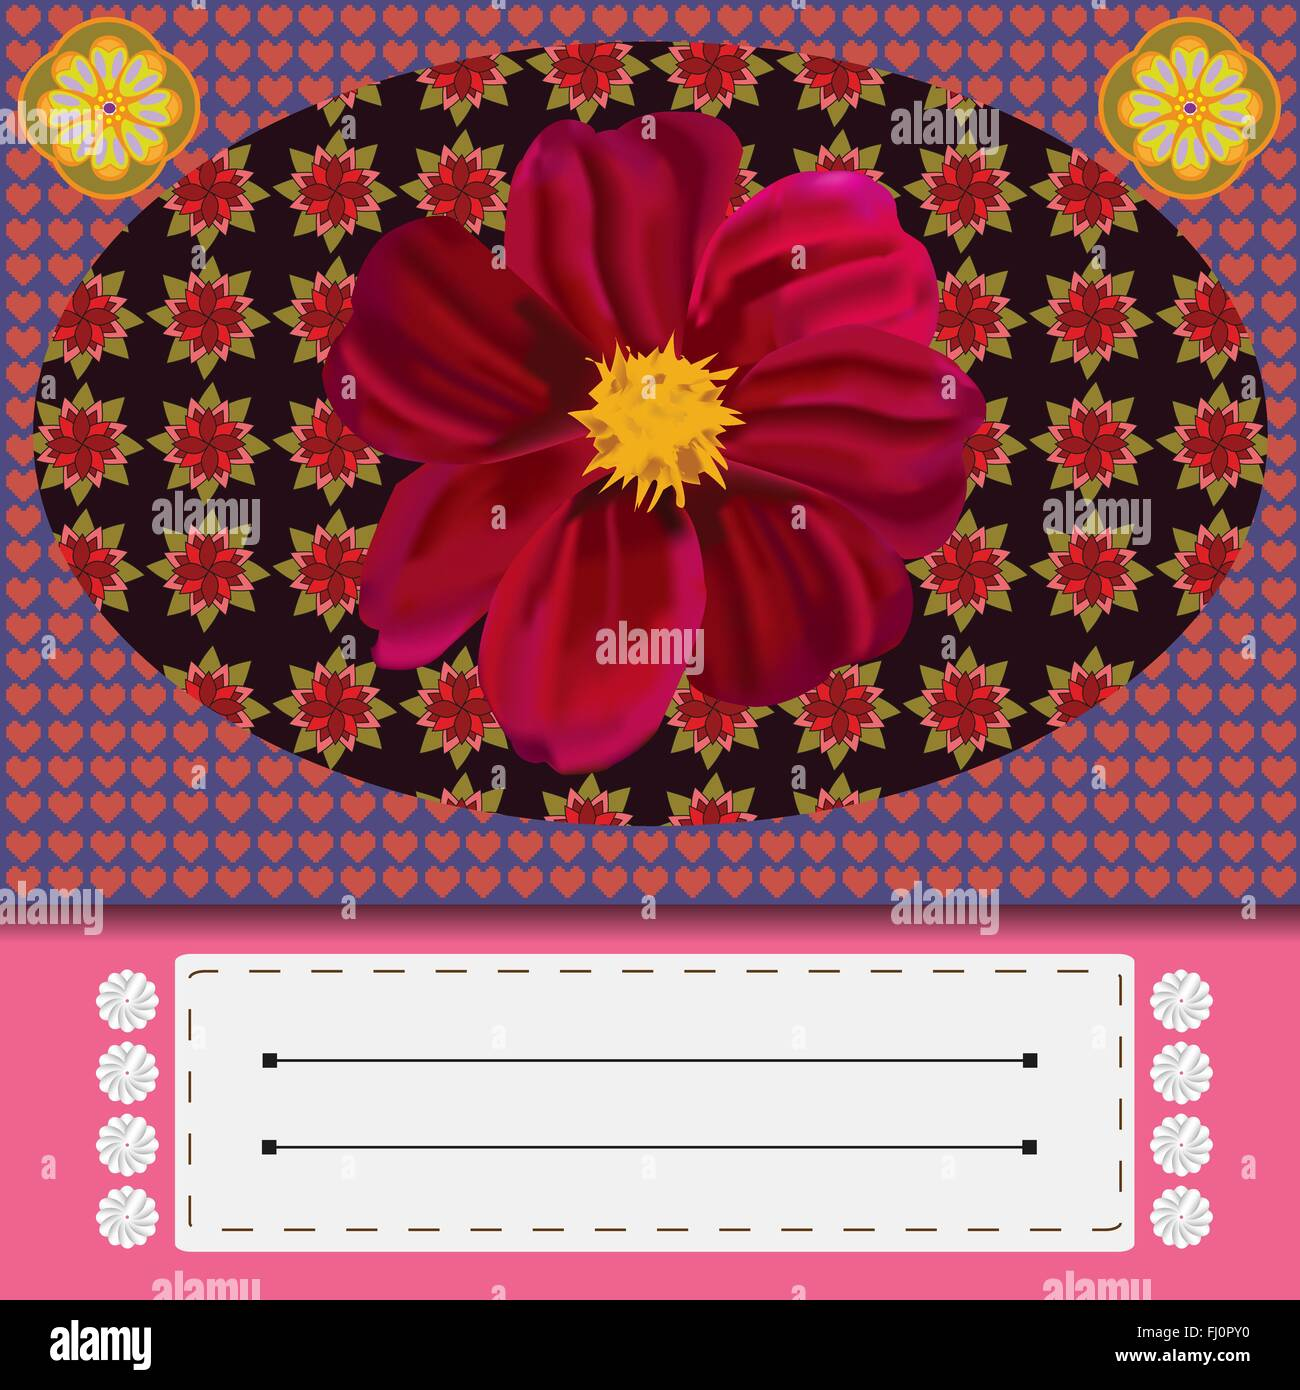 Pink flowers yellow center stock vector images alamy invitation greeting card with big pink flower in the center digital background vector illustration mightylinksfo